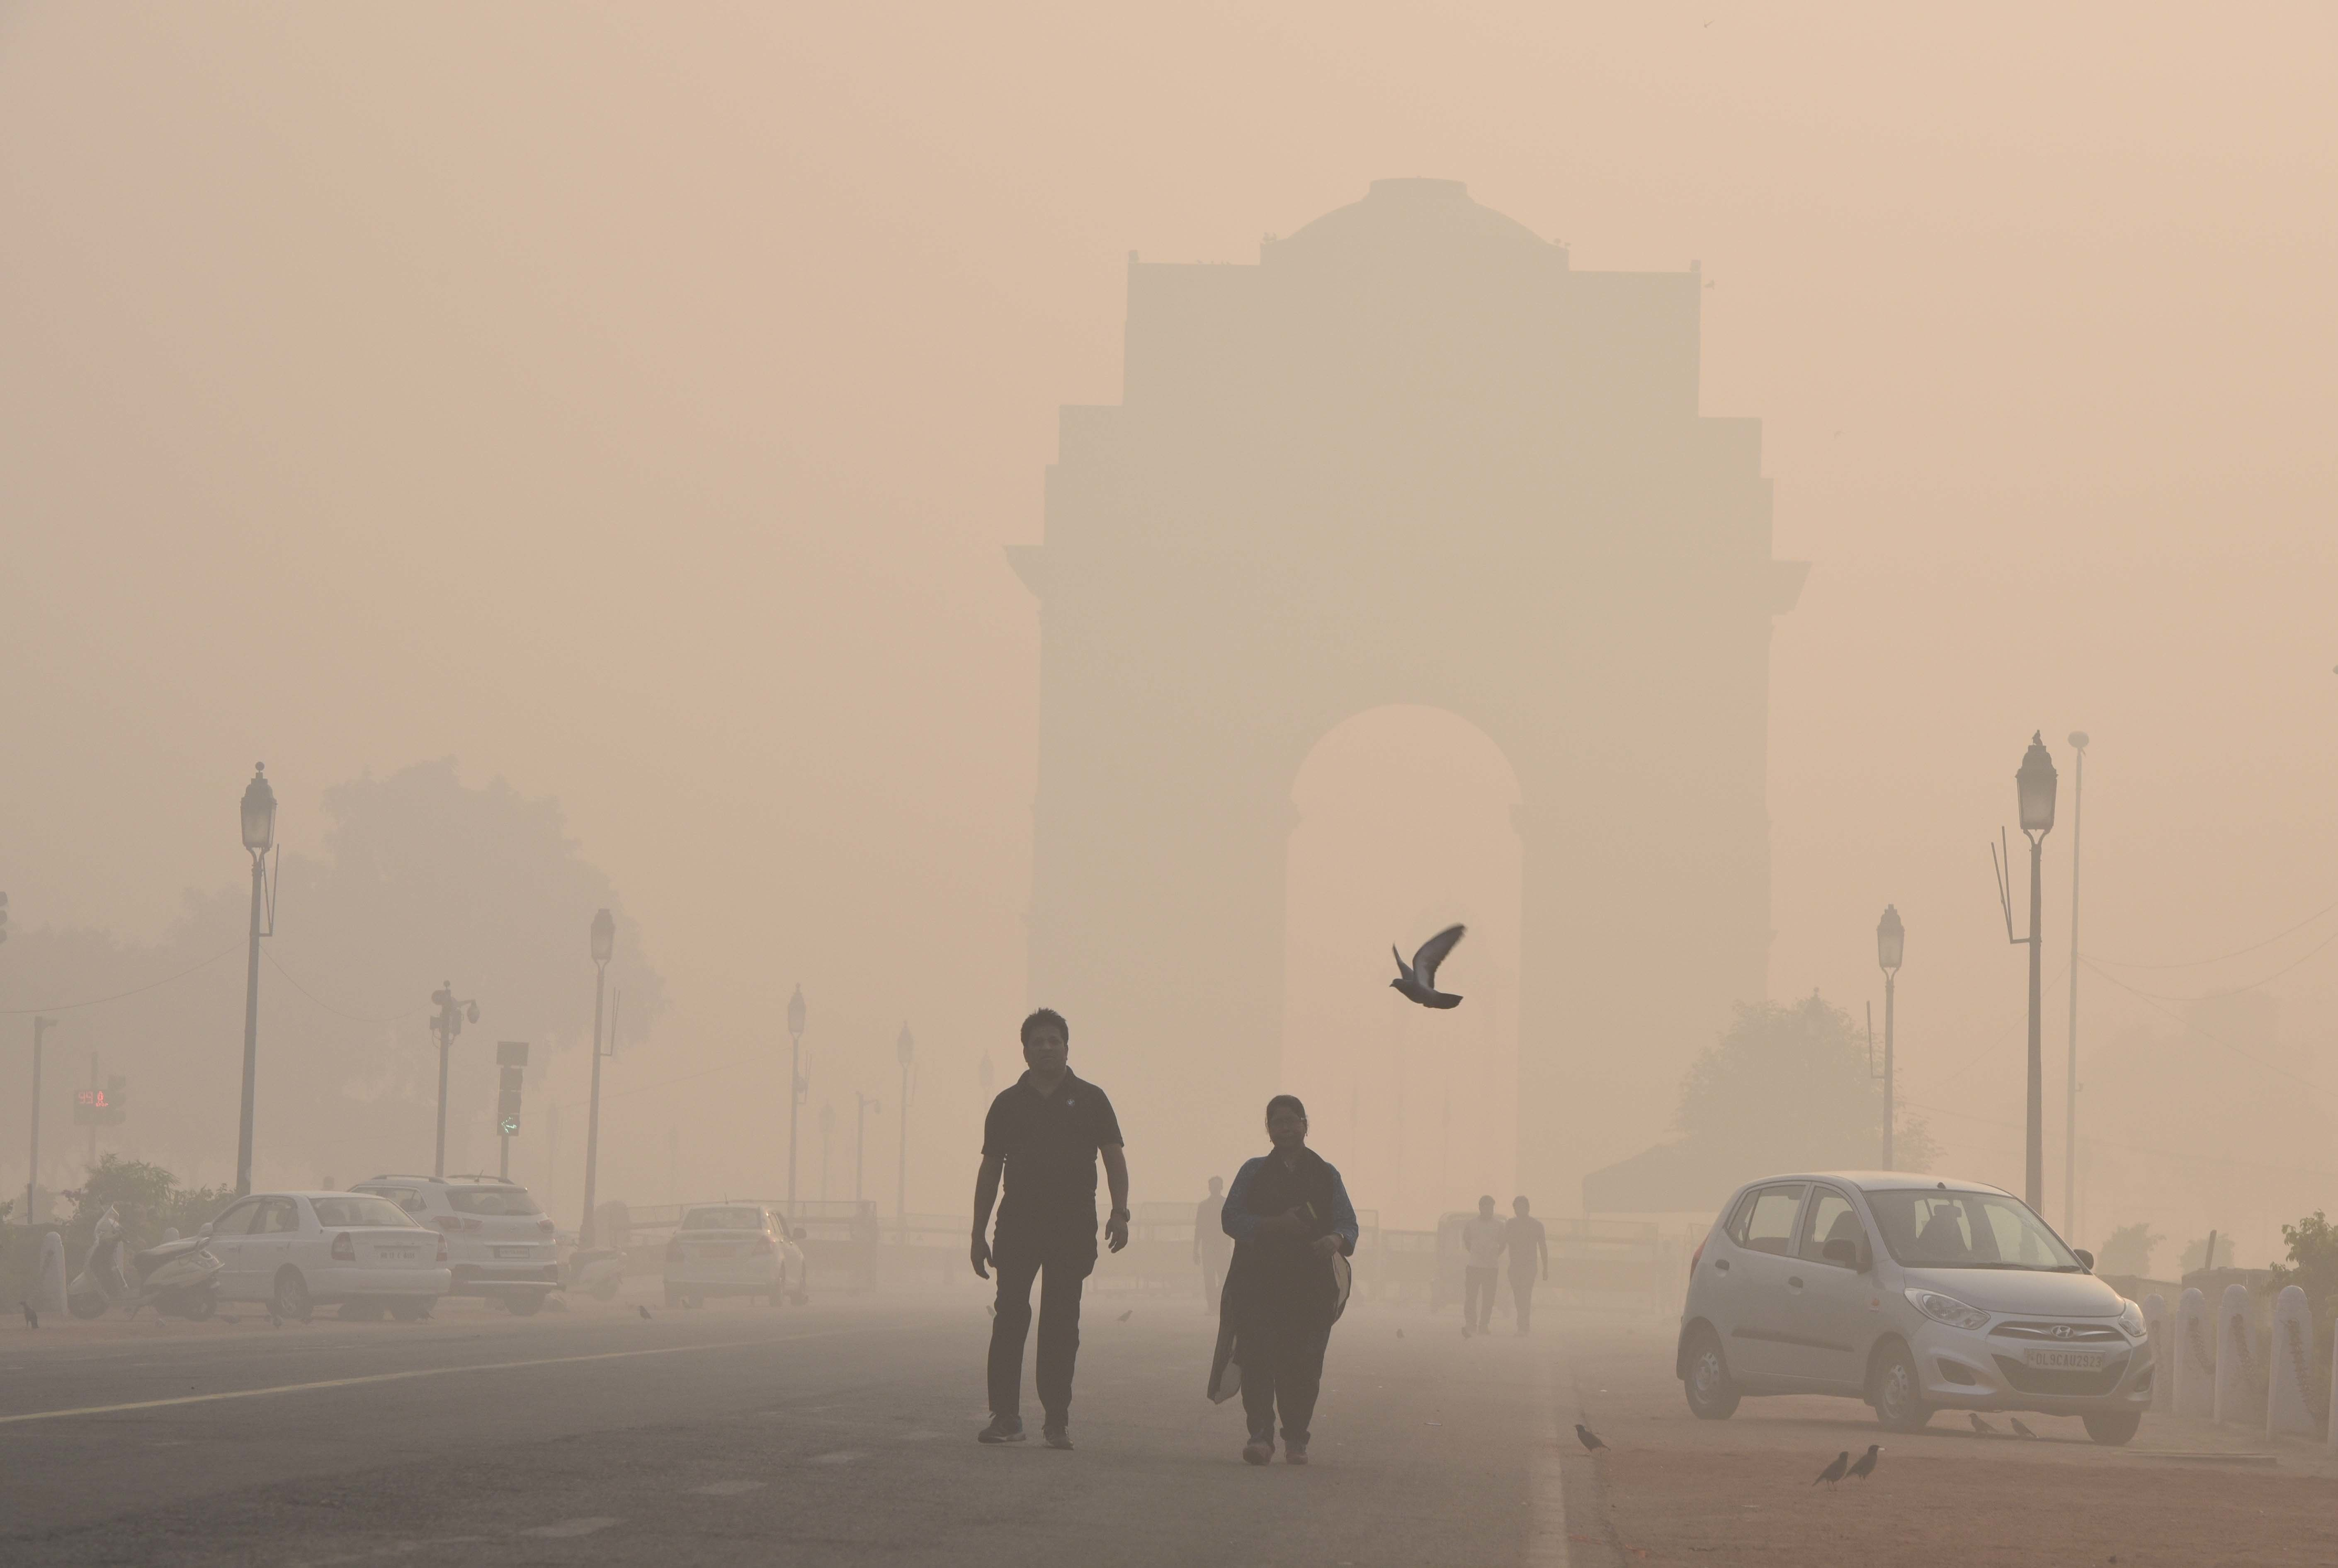 NEW DELHI, INDIA - OCTOBER 19: Thick smog and pollution covered India Gate after the Diwali celebration, on October 19, 2017in New Delhi, India. The air quality in various areas of the city were at 'severe and 'very poor' in the morning after Diwali celebrations. New Delhi covered in a toxic haze on Friday morning after Diwali fireworks caused air quality levels to plummet despite a ban on sale of fireworks by the Supreme Court. (Photo by Arvind Yadav/Hindustan Times via Getty Images)